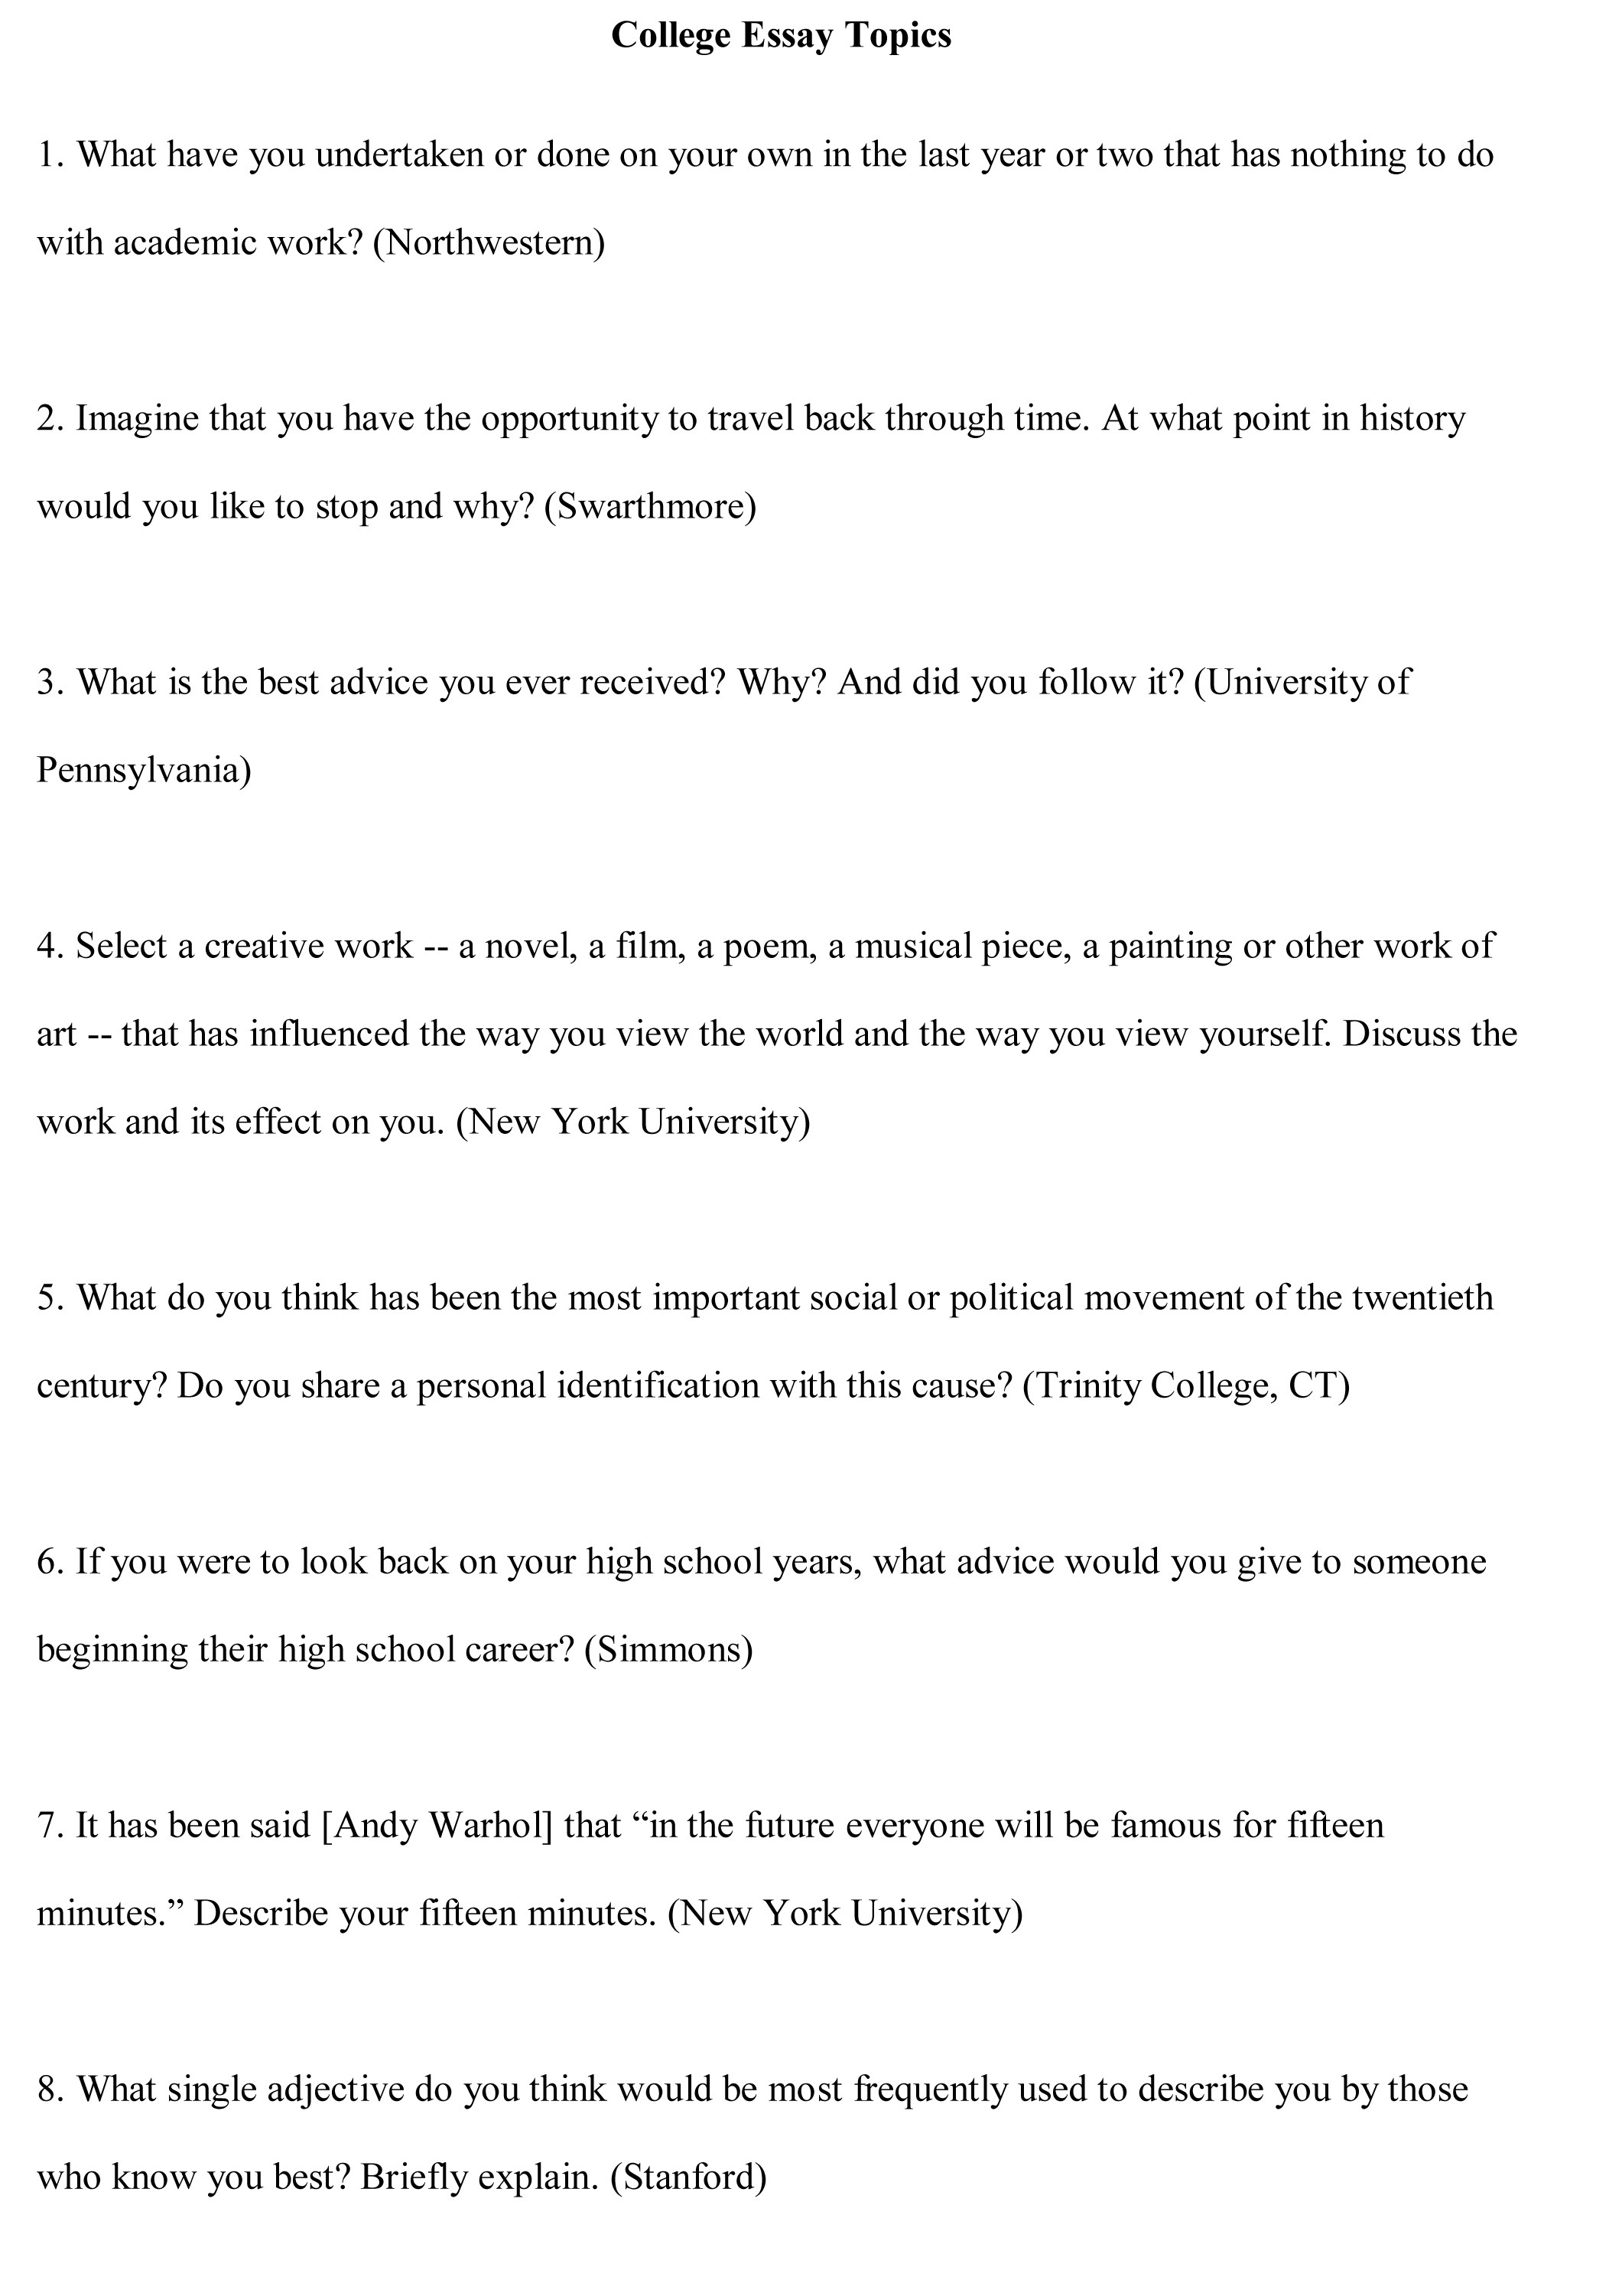 010 College Essay Topics Free Sample Example For Unbelievable An Interesting Expository Full